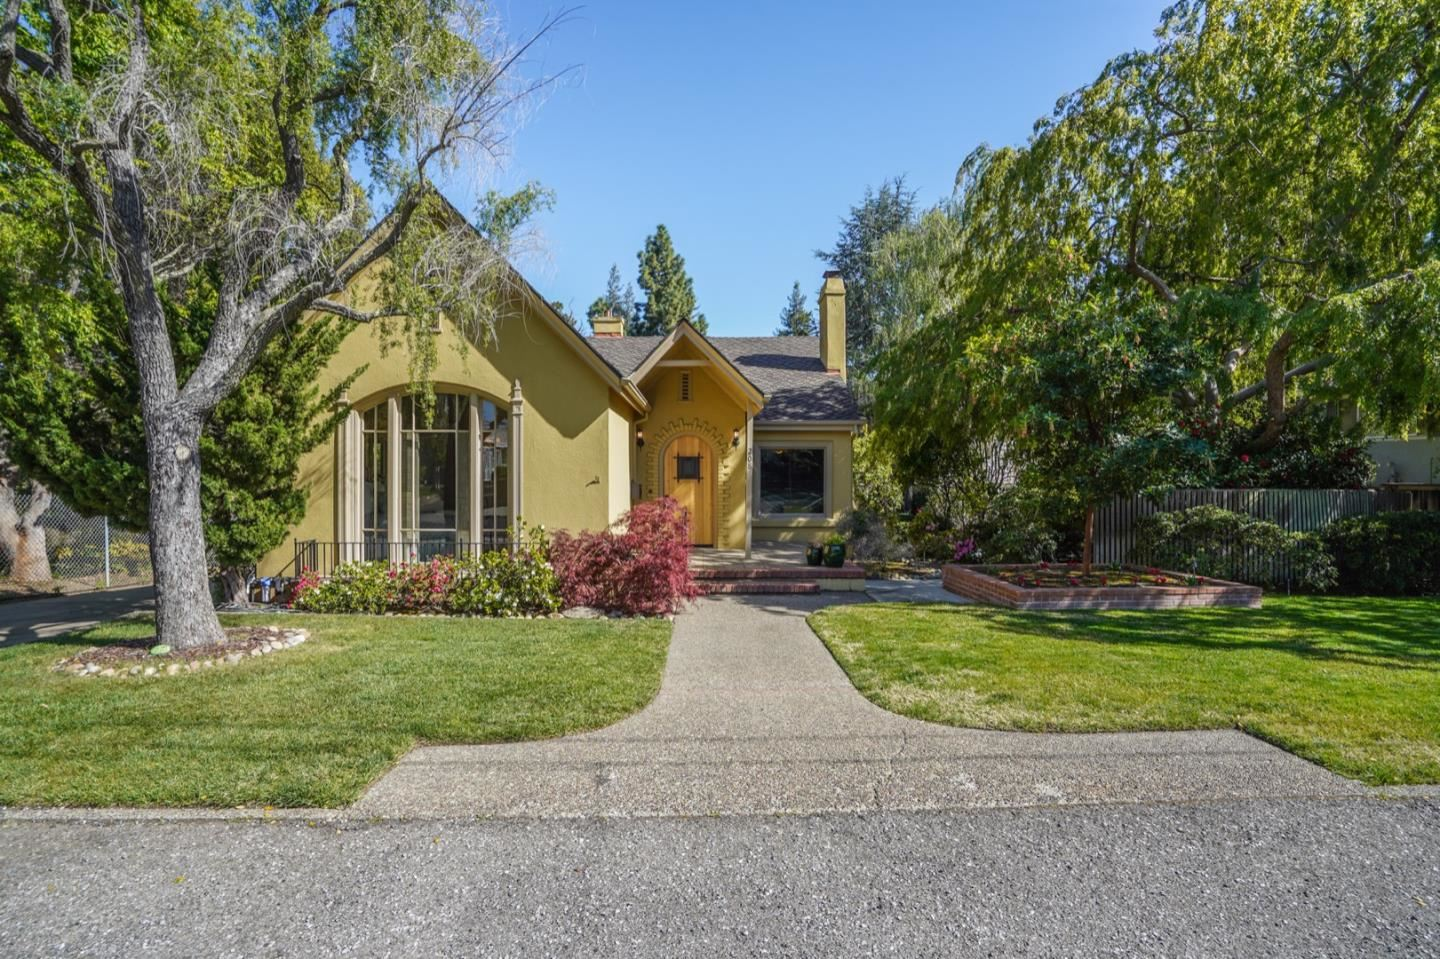 Photo for 208 Belmont AVE, LOS GATOS, CA 95030 (MLS # ML81836754)